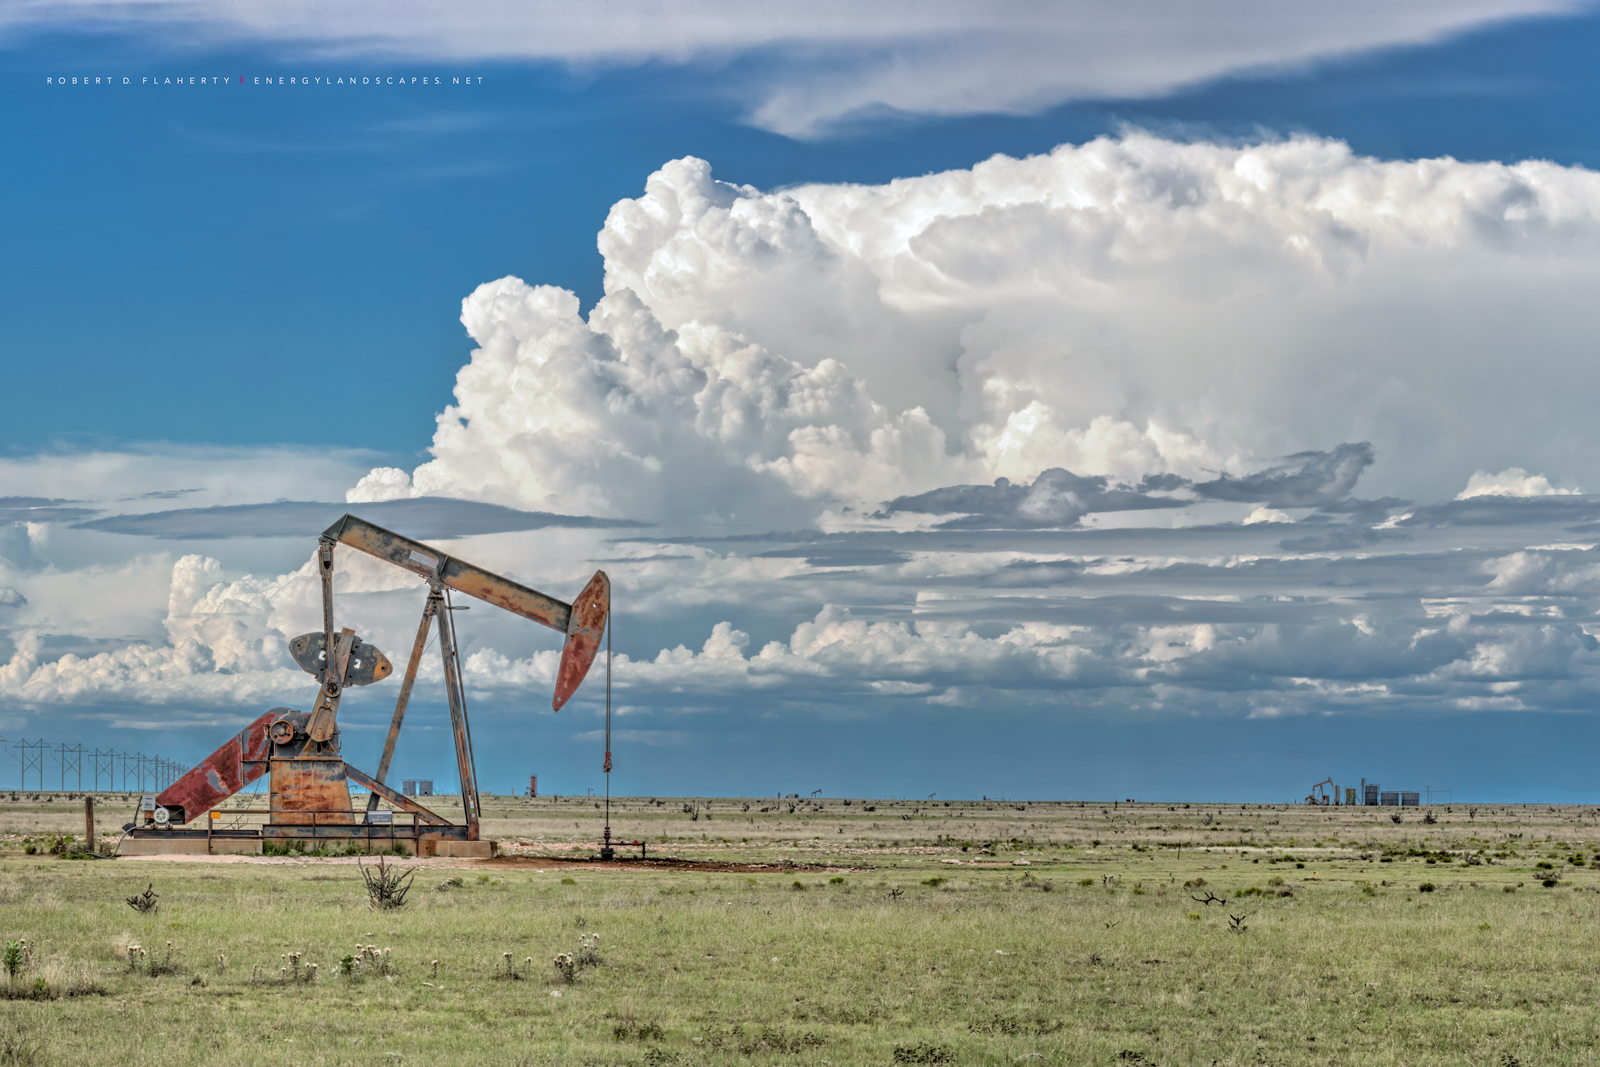 Pumpjack,  pump jack, Chavez County New Mexico, New Mexico, oil production, gas production, grassland, monsoon, drought, thunderstorm, 2014, Eastern New Mexico, oilfield, oilfield art, oil & gas photo, photo